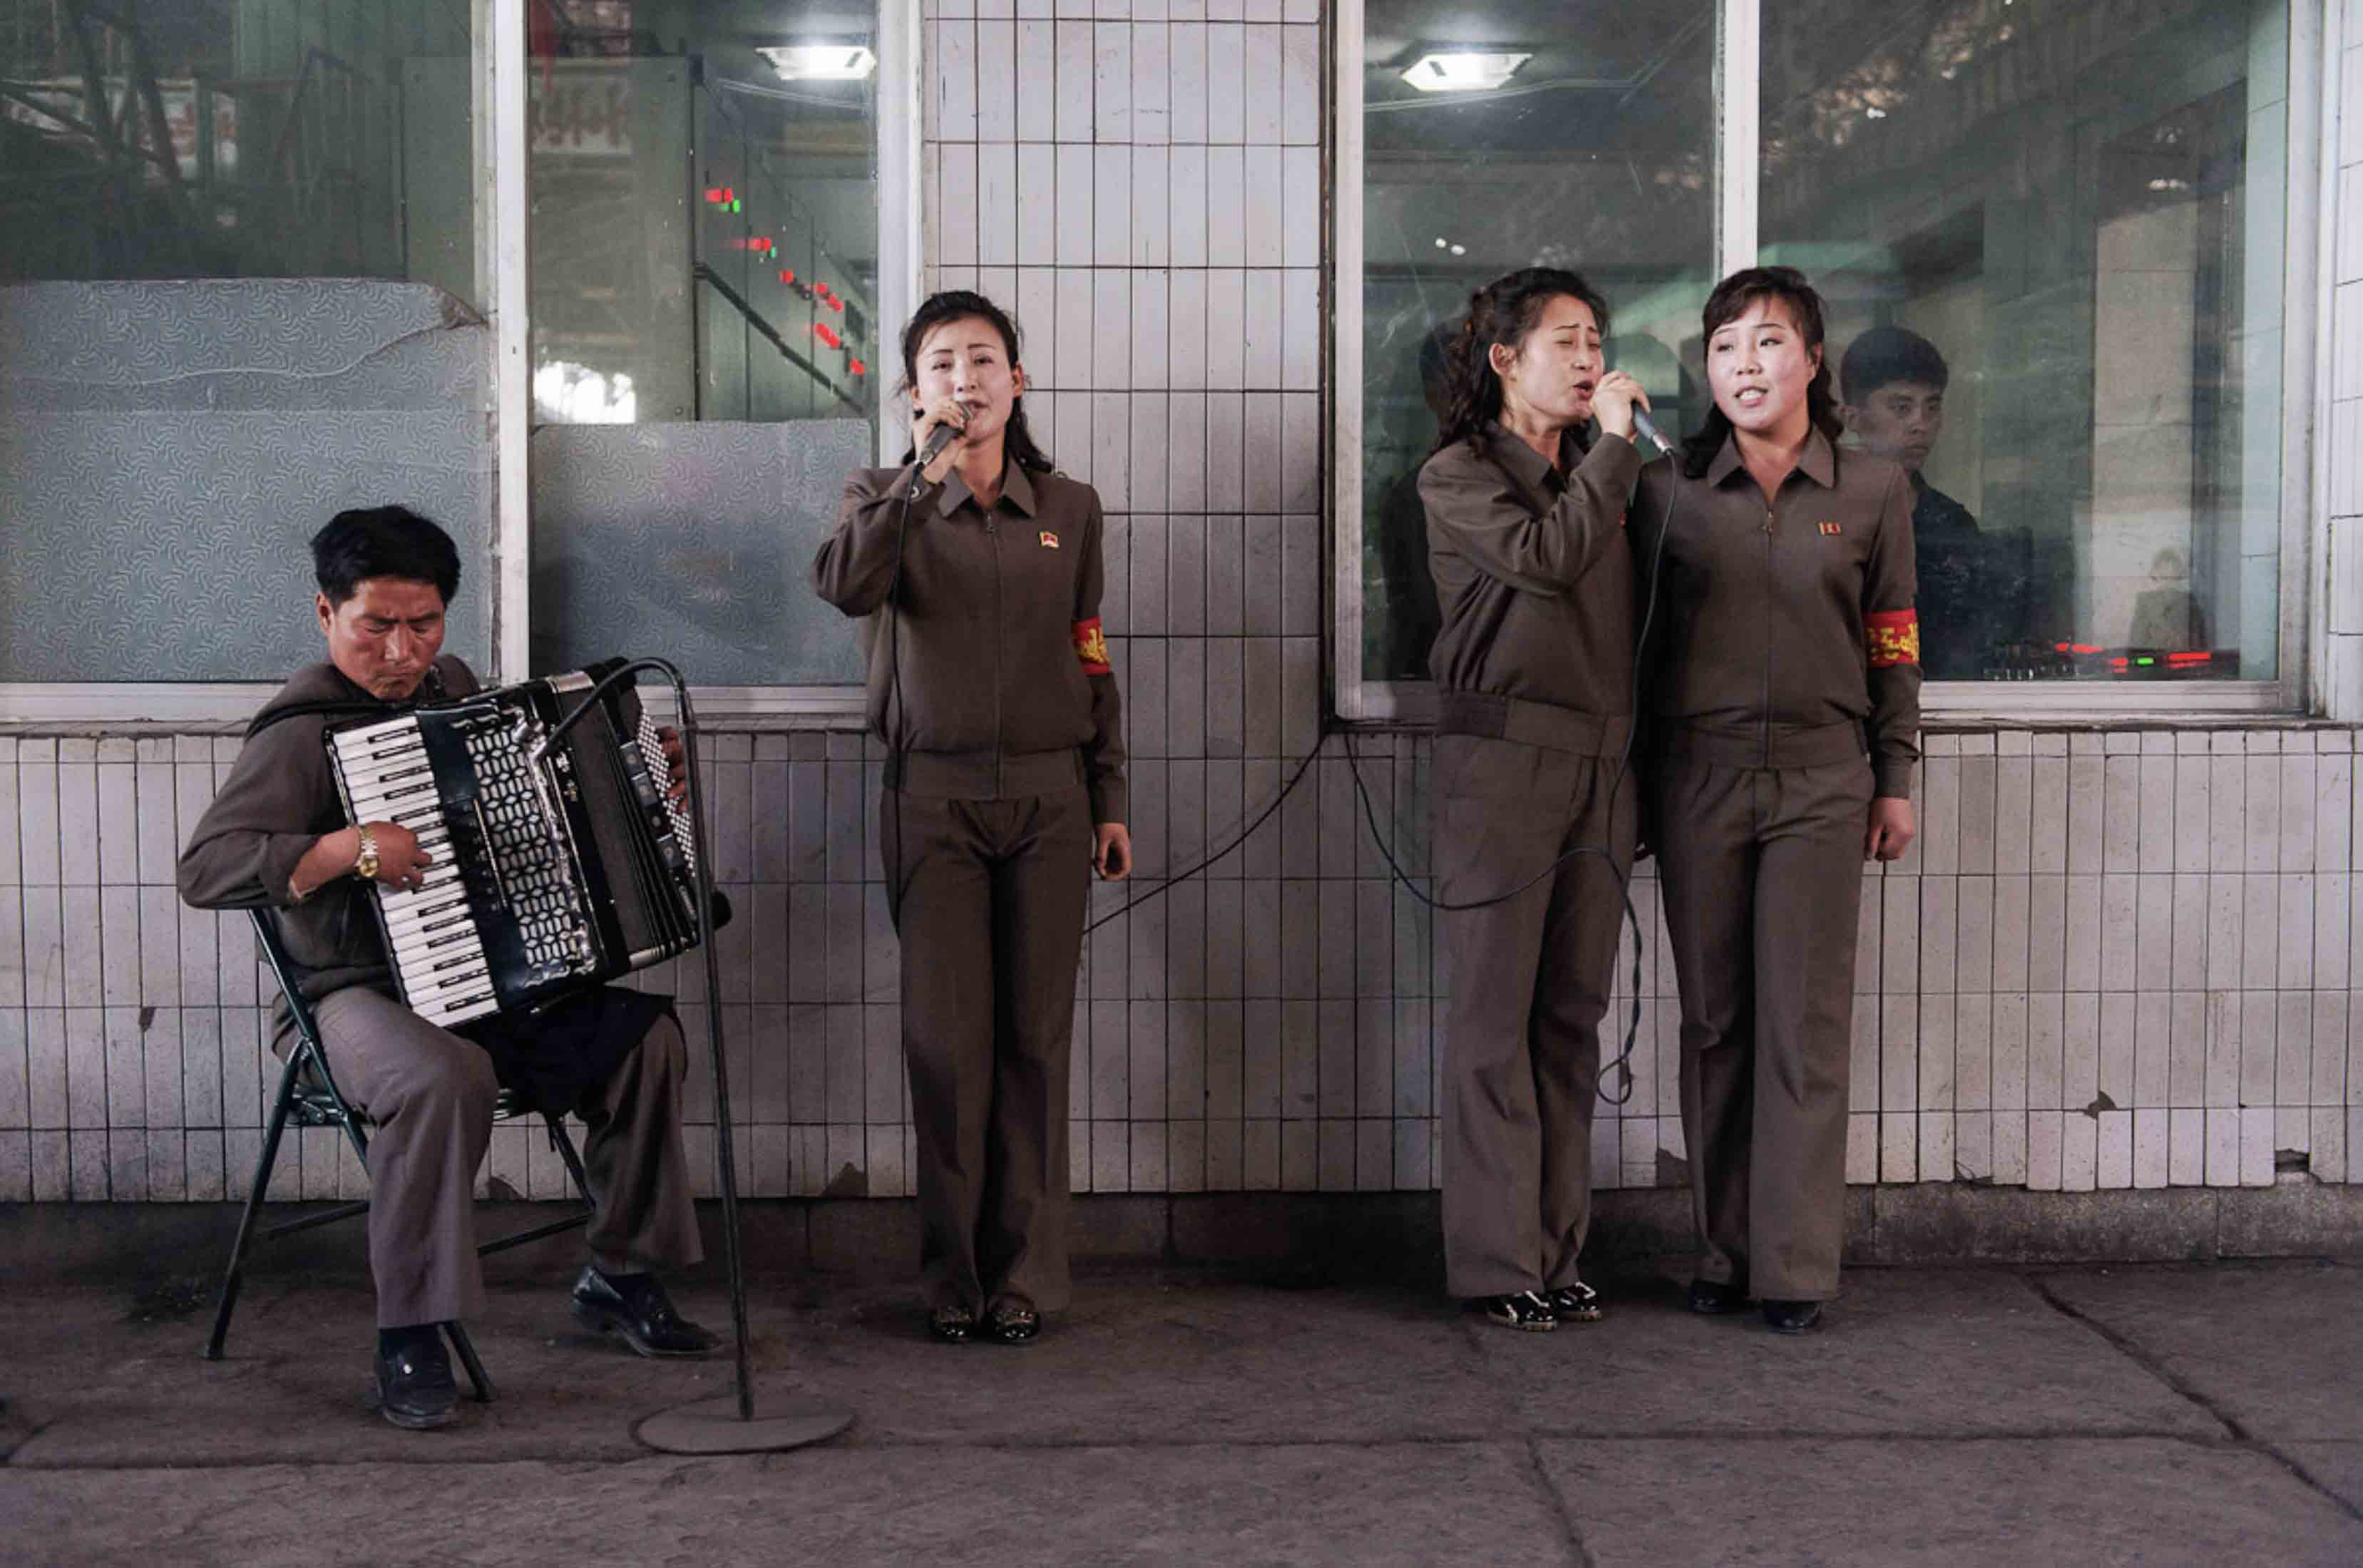 #62. Accordionist + Singers, Chollima Steelworks